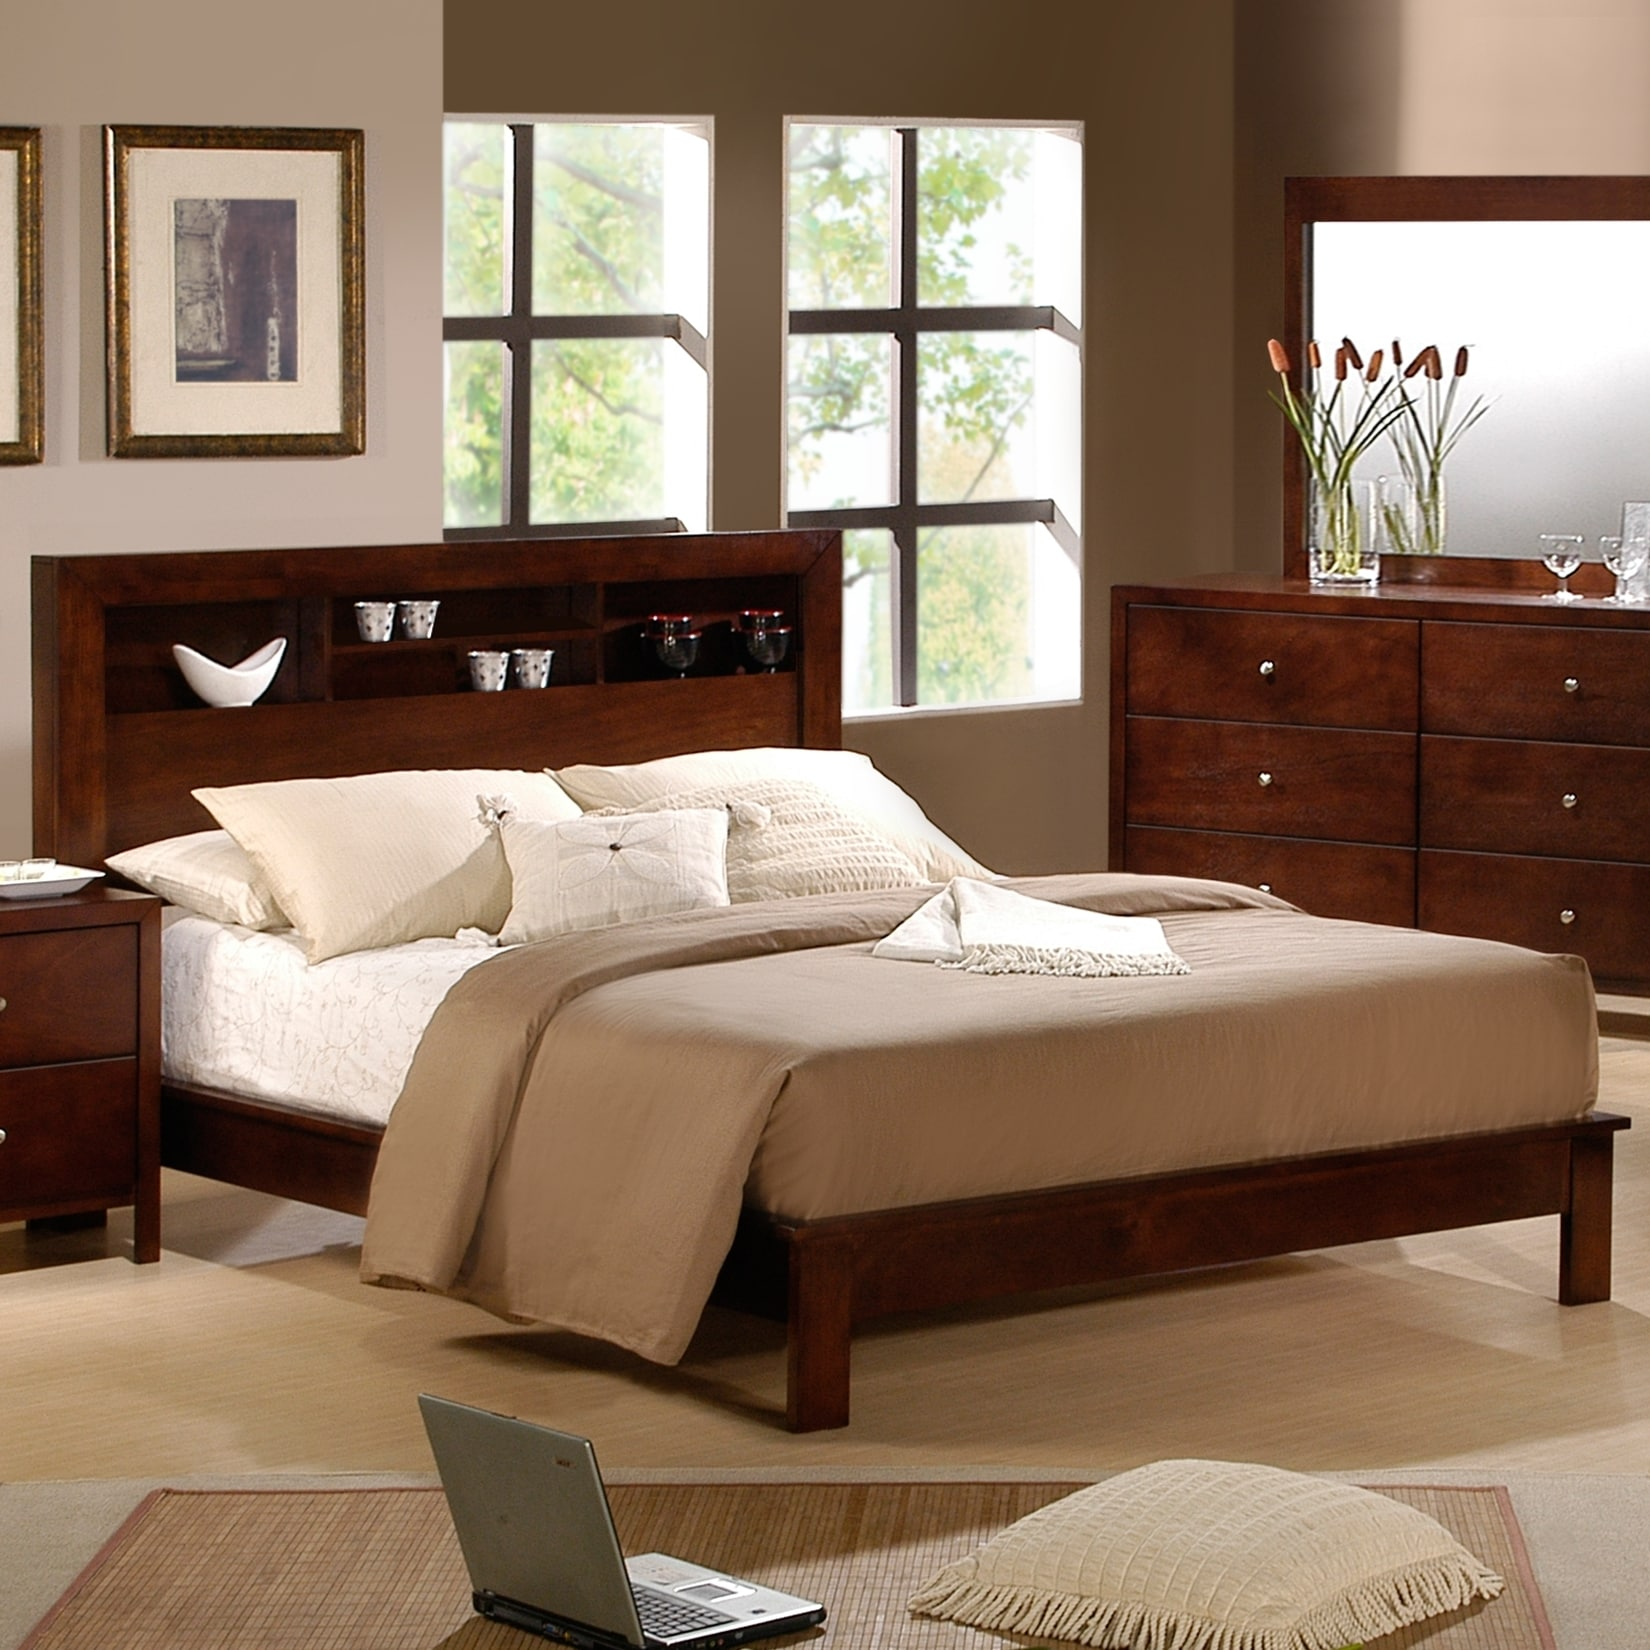 Picket House Sonata Display Headboard Queen-size Bed